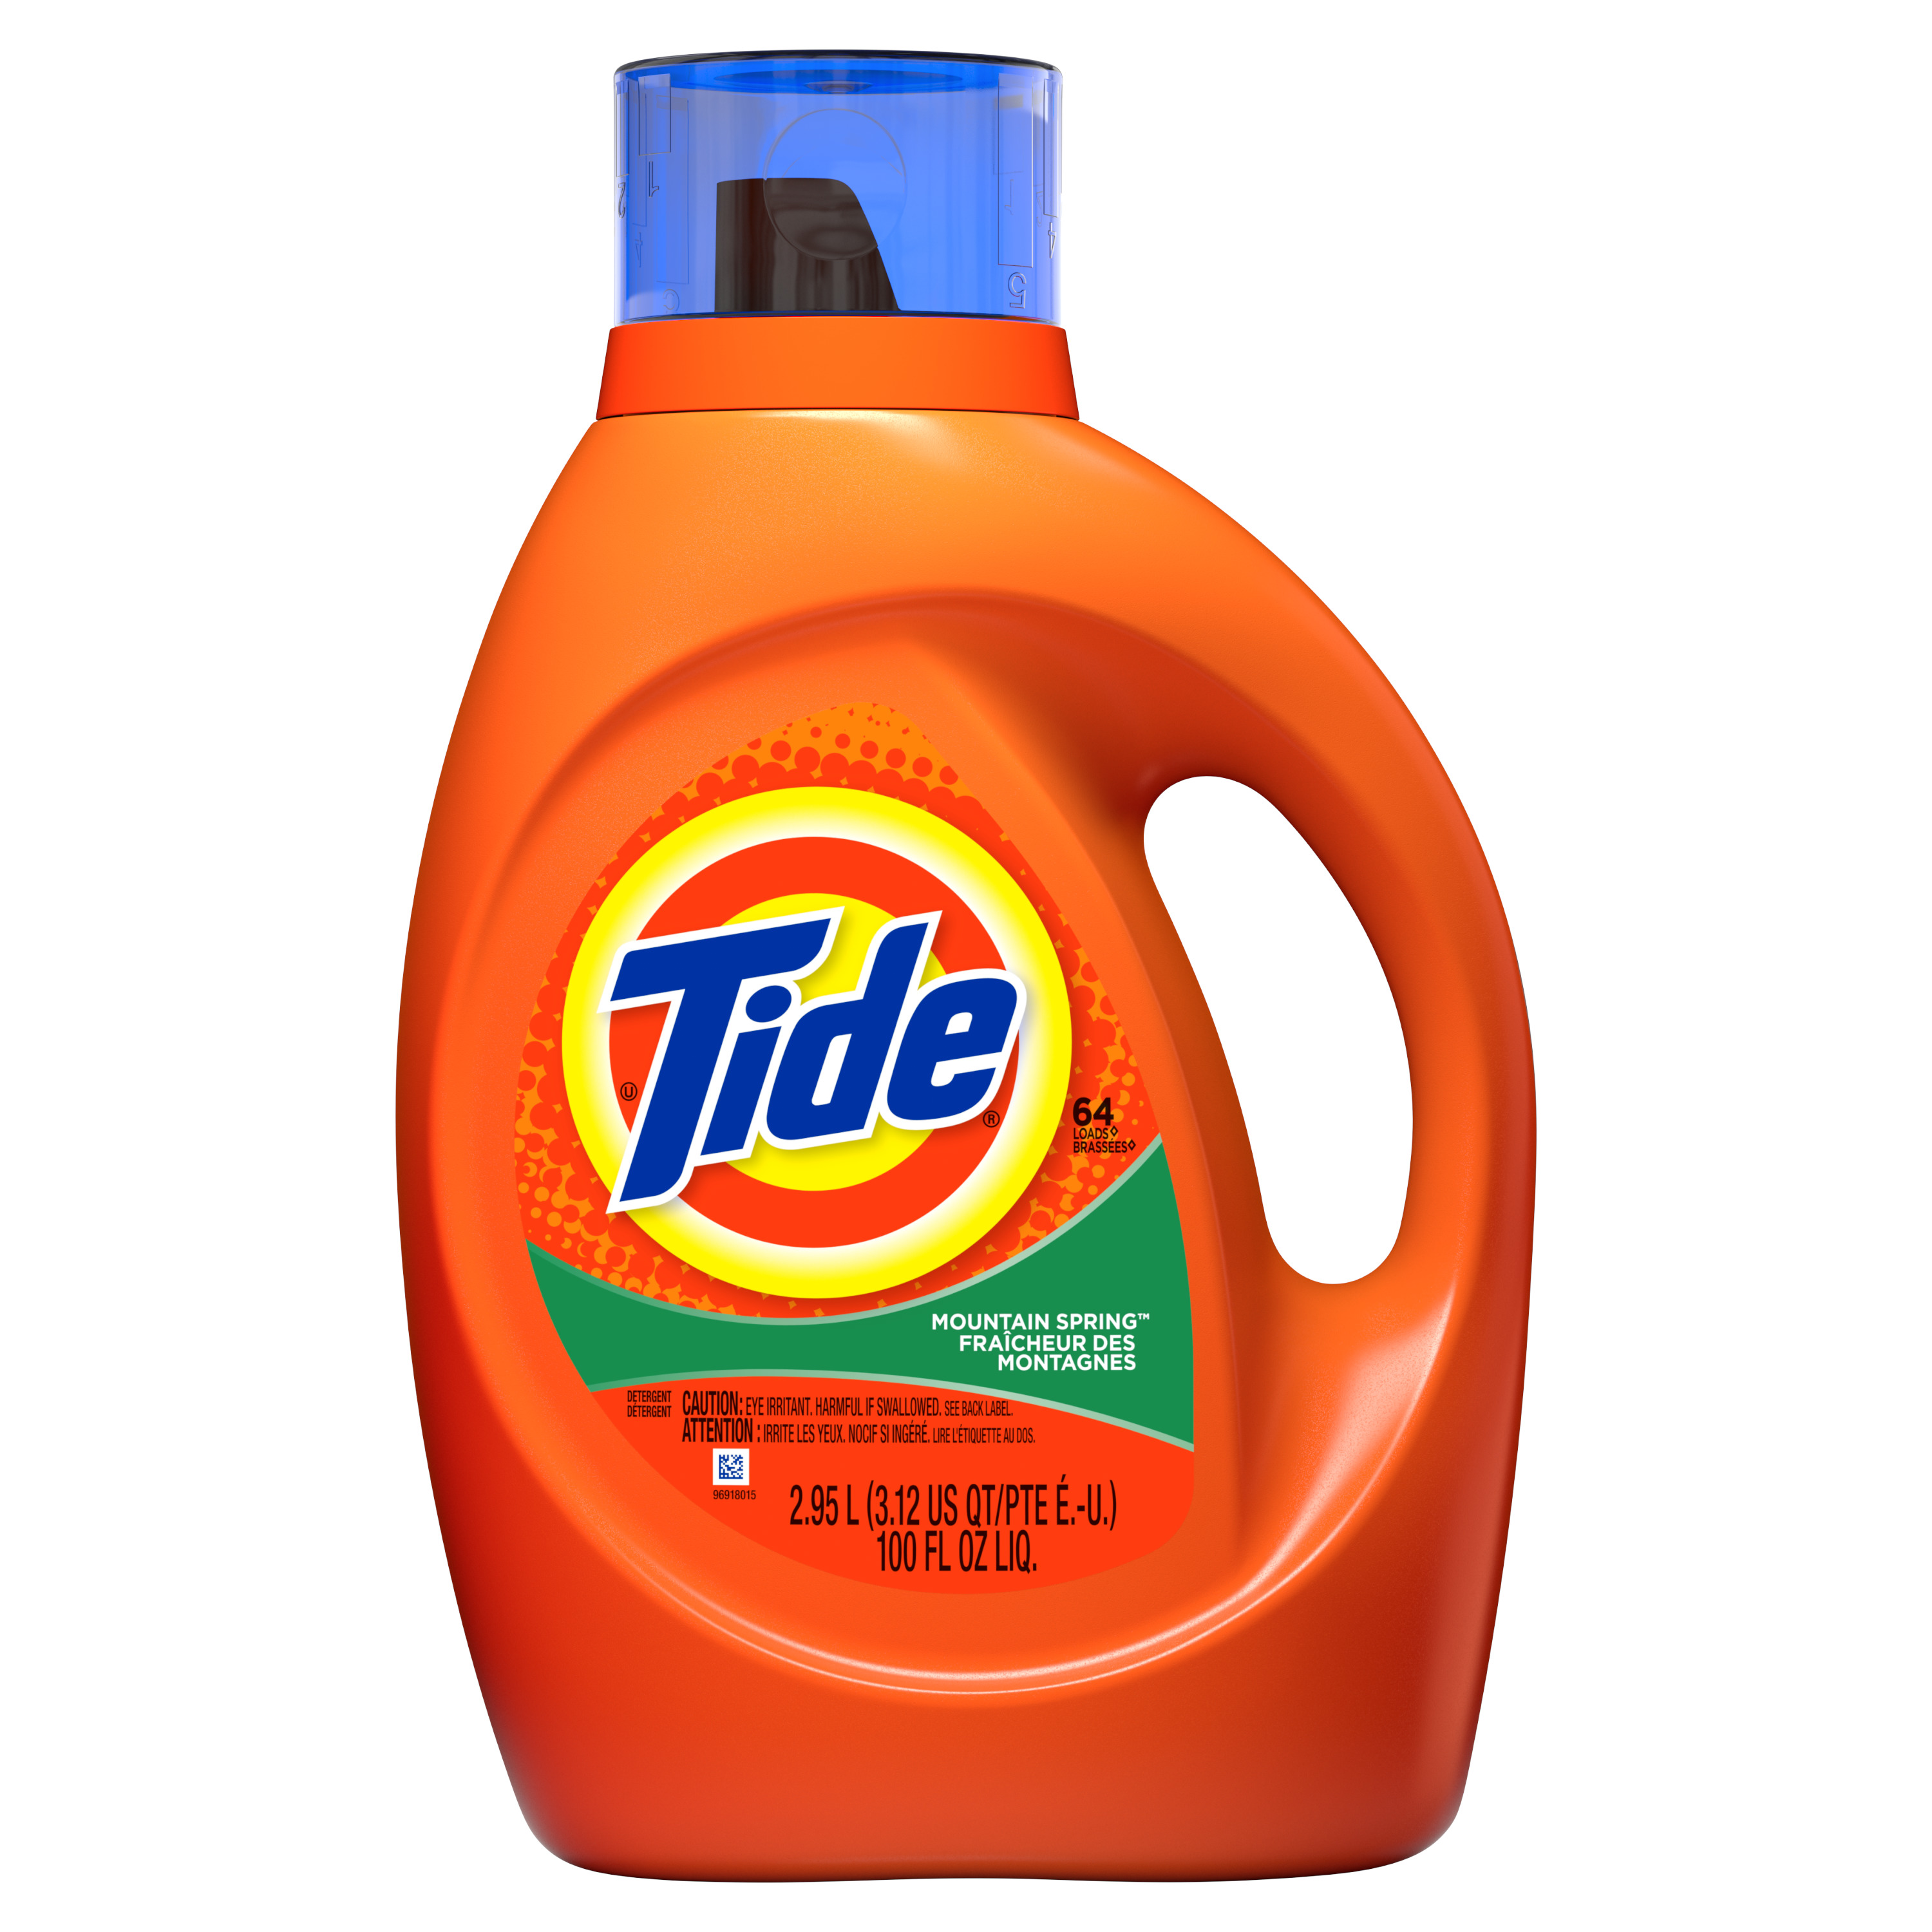 (2 pack) Tide Mountain Spring Scent Liquid Laundry Detergent, 100 oz, 64 loads